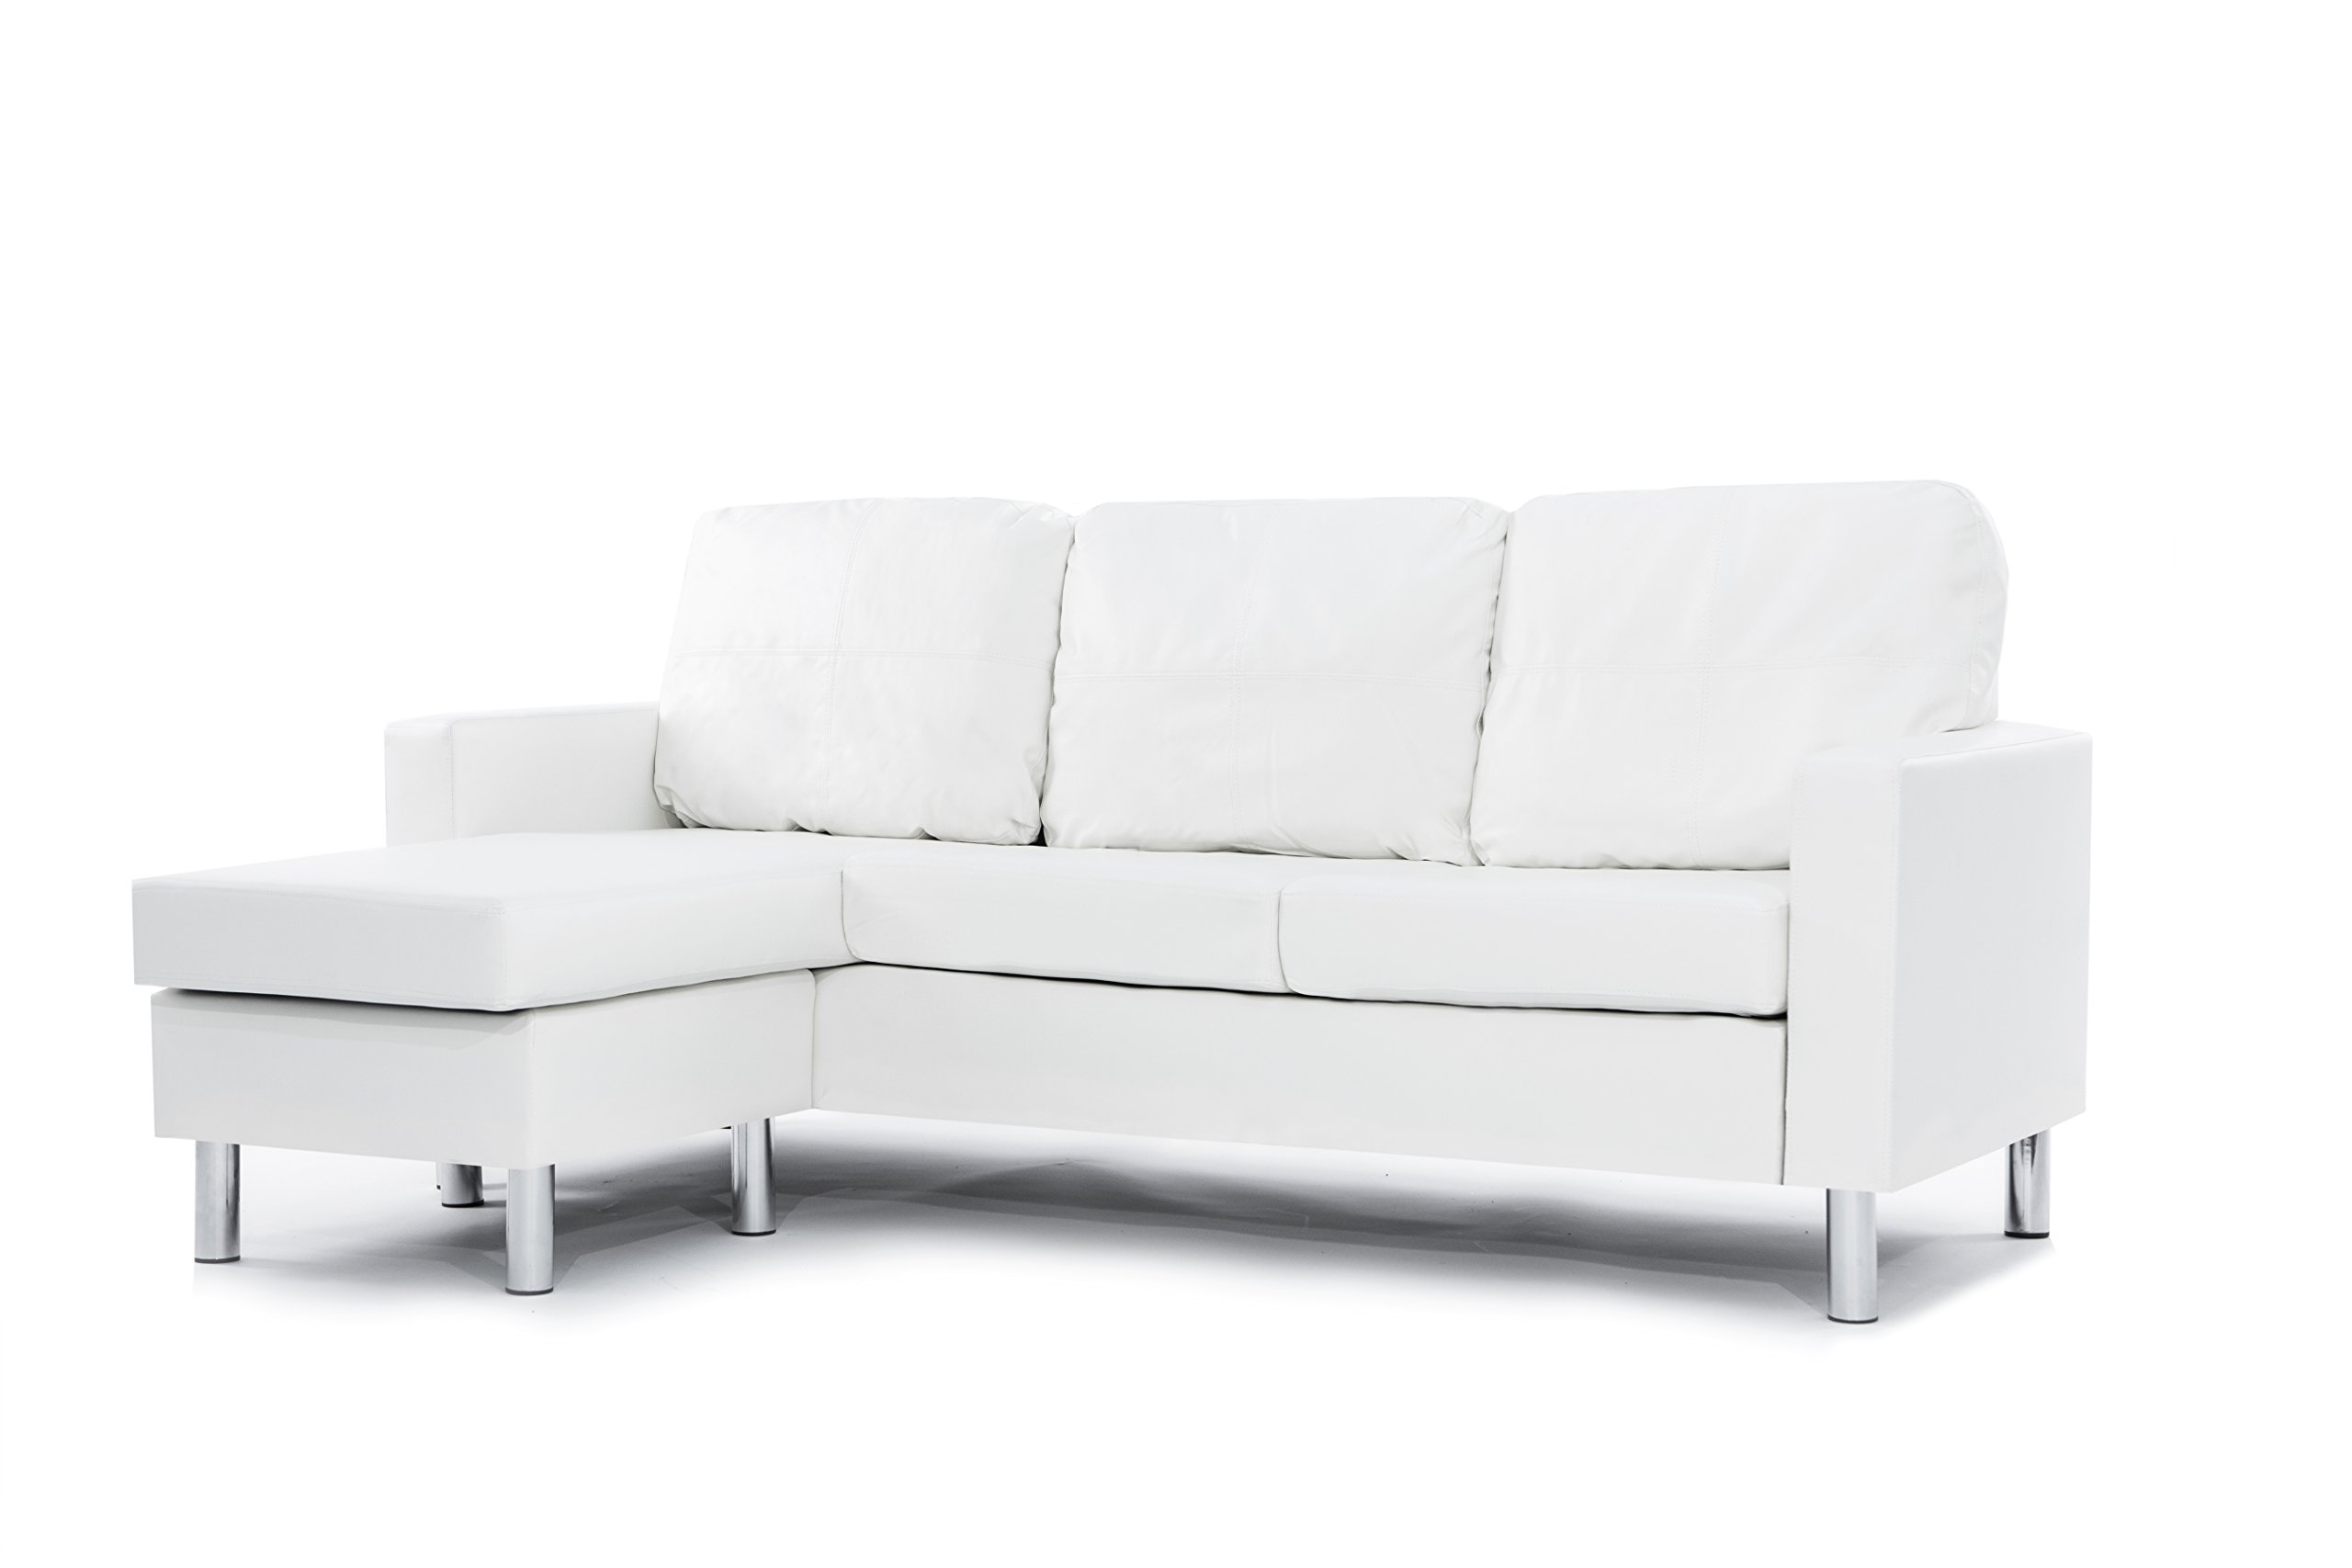 Pleasing Cheap White Leather Sofa Beds Find White Leather Sofa Beds Pdpeps Interior Chair Design Pdpepsorg